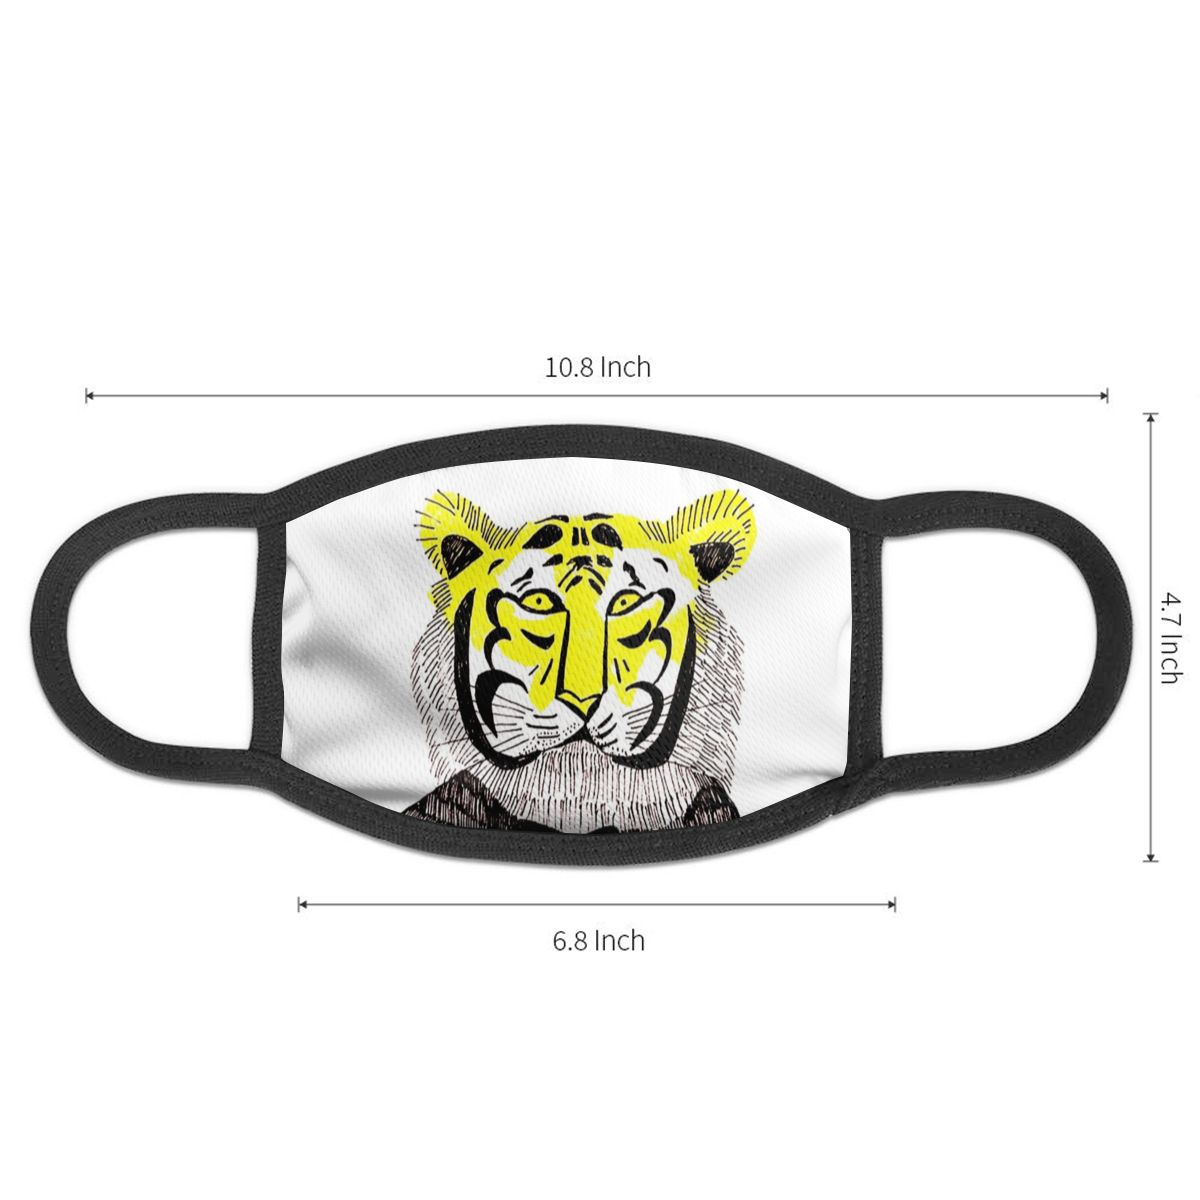 NOISYDESIGNS Cute Mask Animals Tiger Printed Mouth Masks Black Mask Mouth Half Face Custom Mask Printing Mouth Face Mask